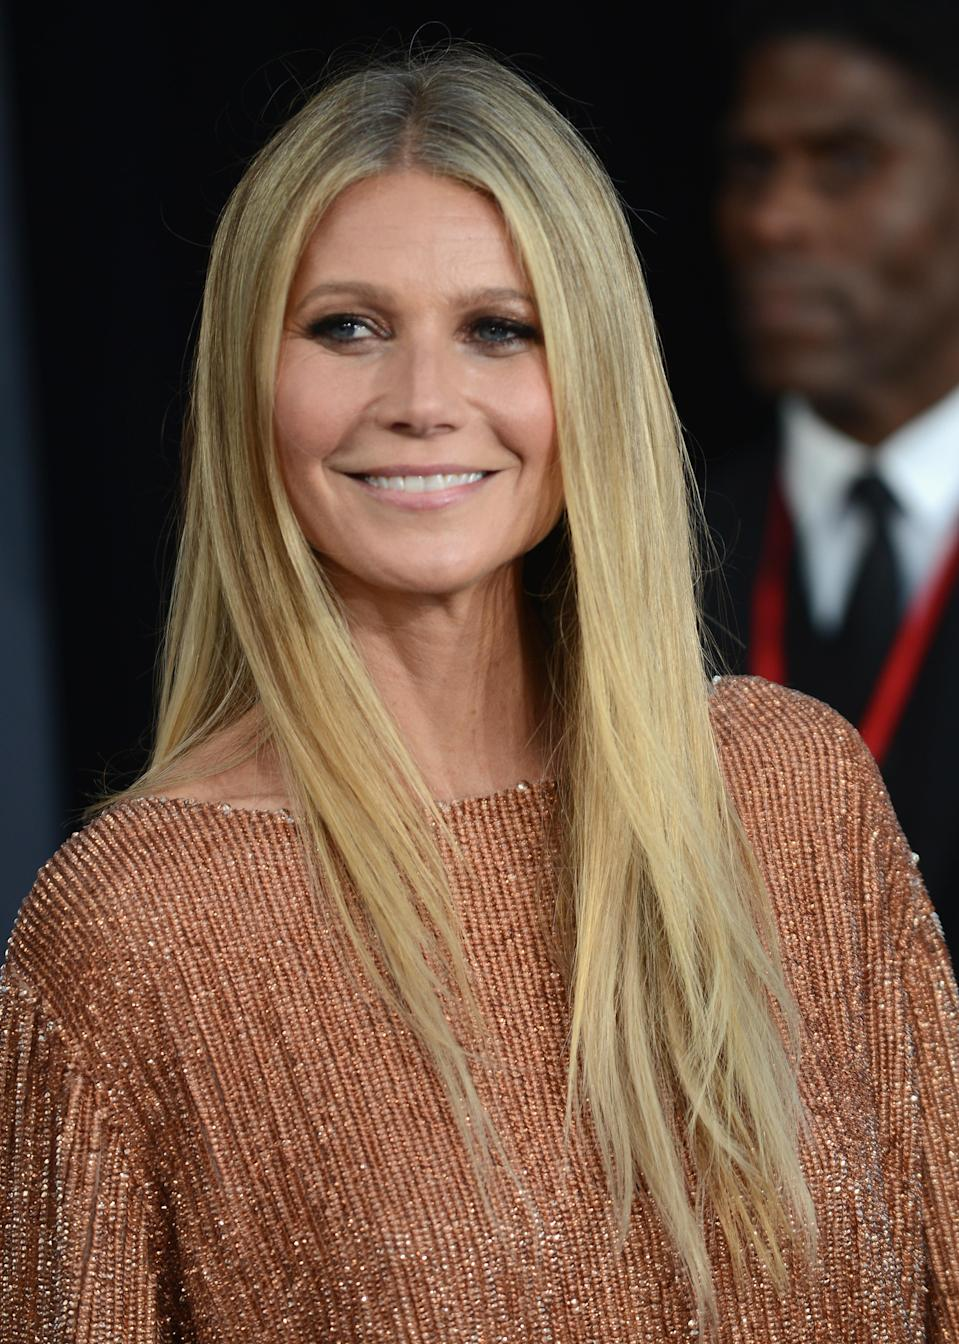 "<p>She may have founded wellbeing company, Goop, but even Gywneth Paltrow isn't afraid to ask for a little help. In an <a href=""https://www.huffingtonpost.co.uk/2013/04/11/gwyneth-paltrow-botox-crazy_n_3061576.html"" rel=""nofollow noopener"" target=""_blank"" data-ylk=""slk:interview"" class=""link rapid-noclick-resp"">interview</a> with <em>Harper's Bazaar</em>, the former actress admitted she had some botox done. ""I would be scared to go under the knife, but you know, talk to me when I'm 50. I'll try anything. Except I won't do botox again, because I looked crazy."" <em>[Photo: Getty]</em> </p>"